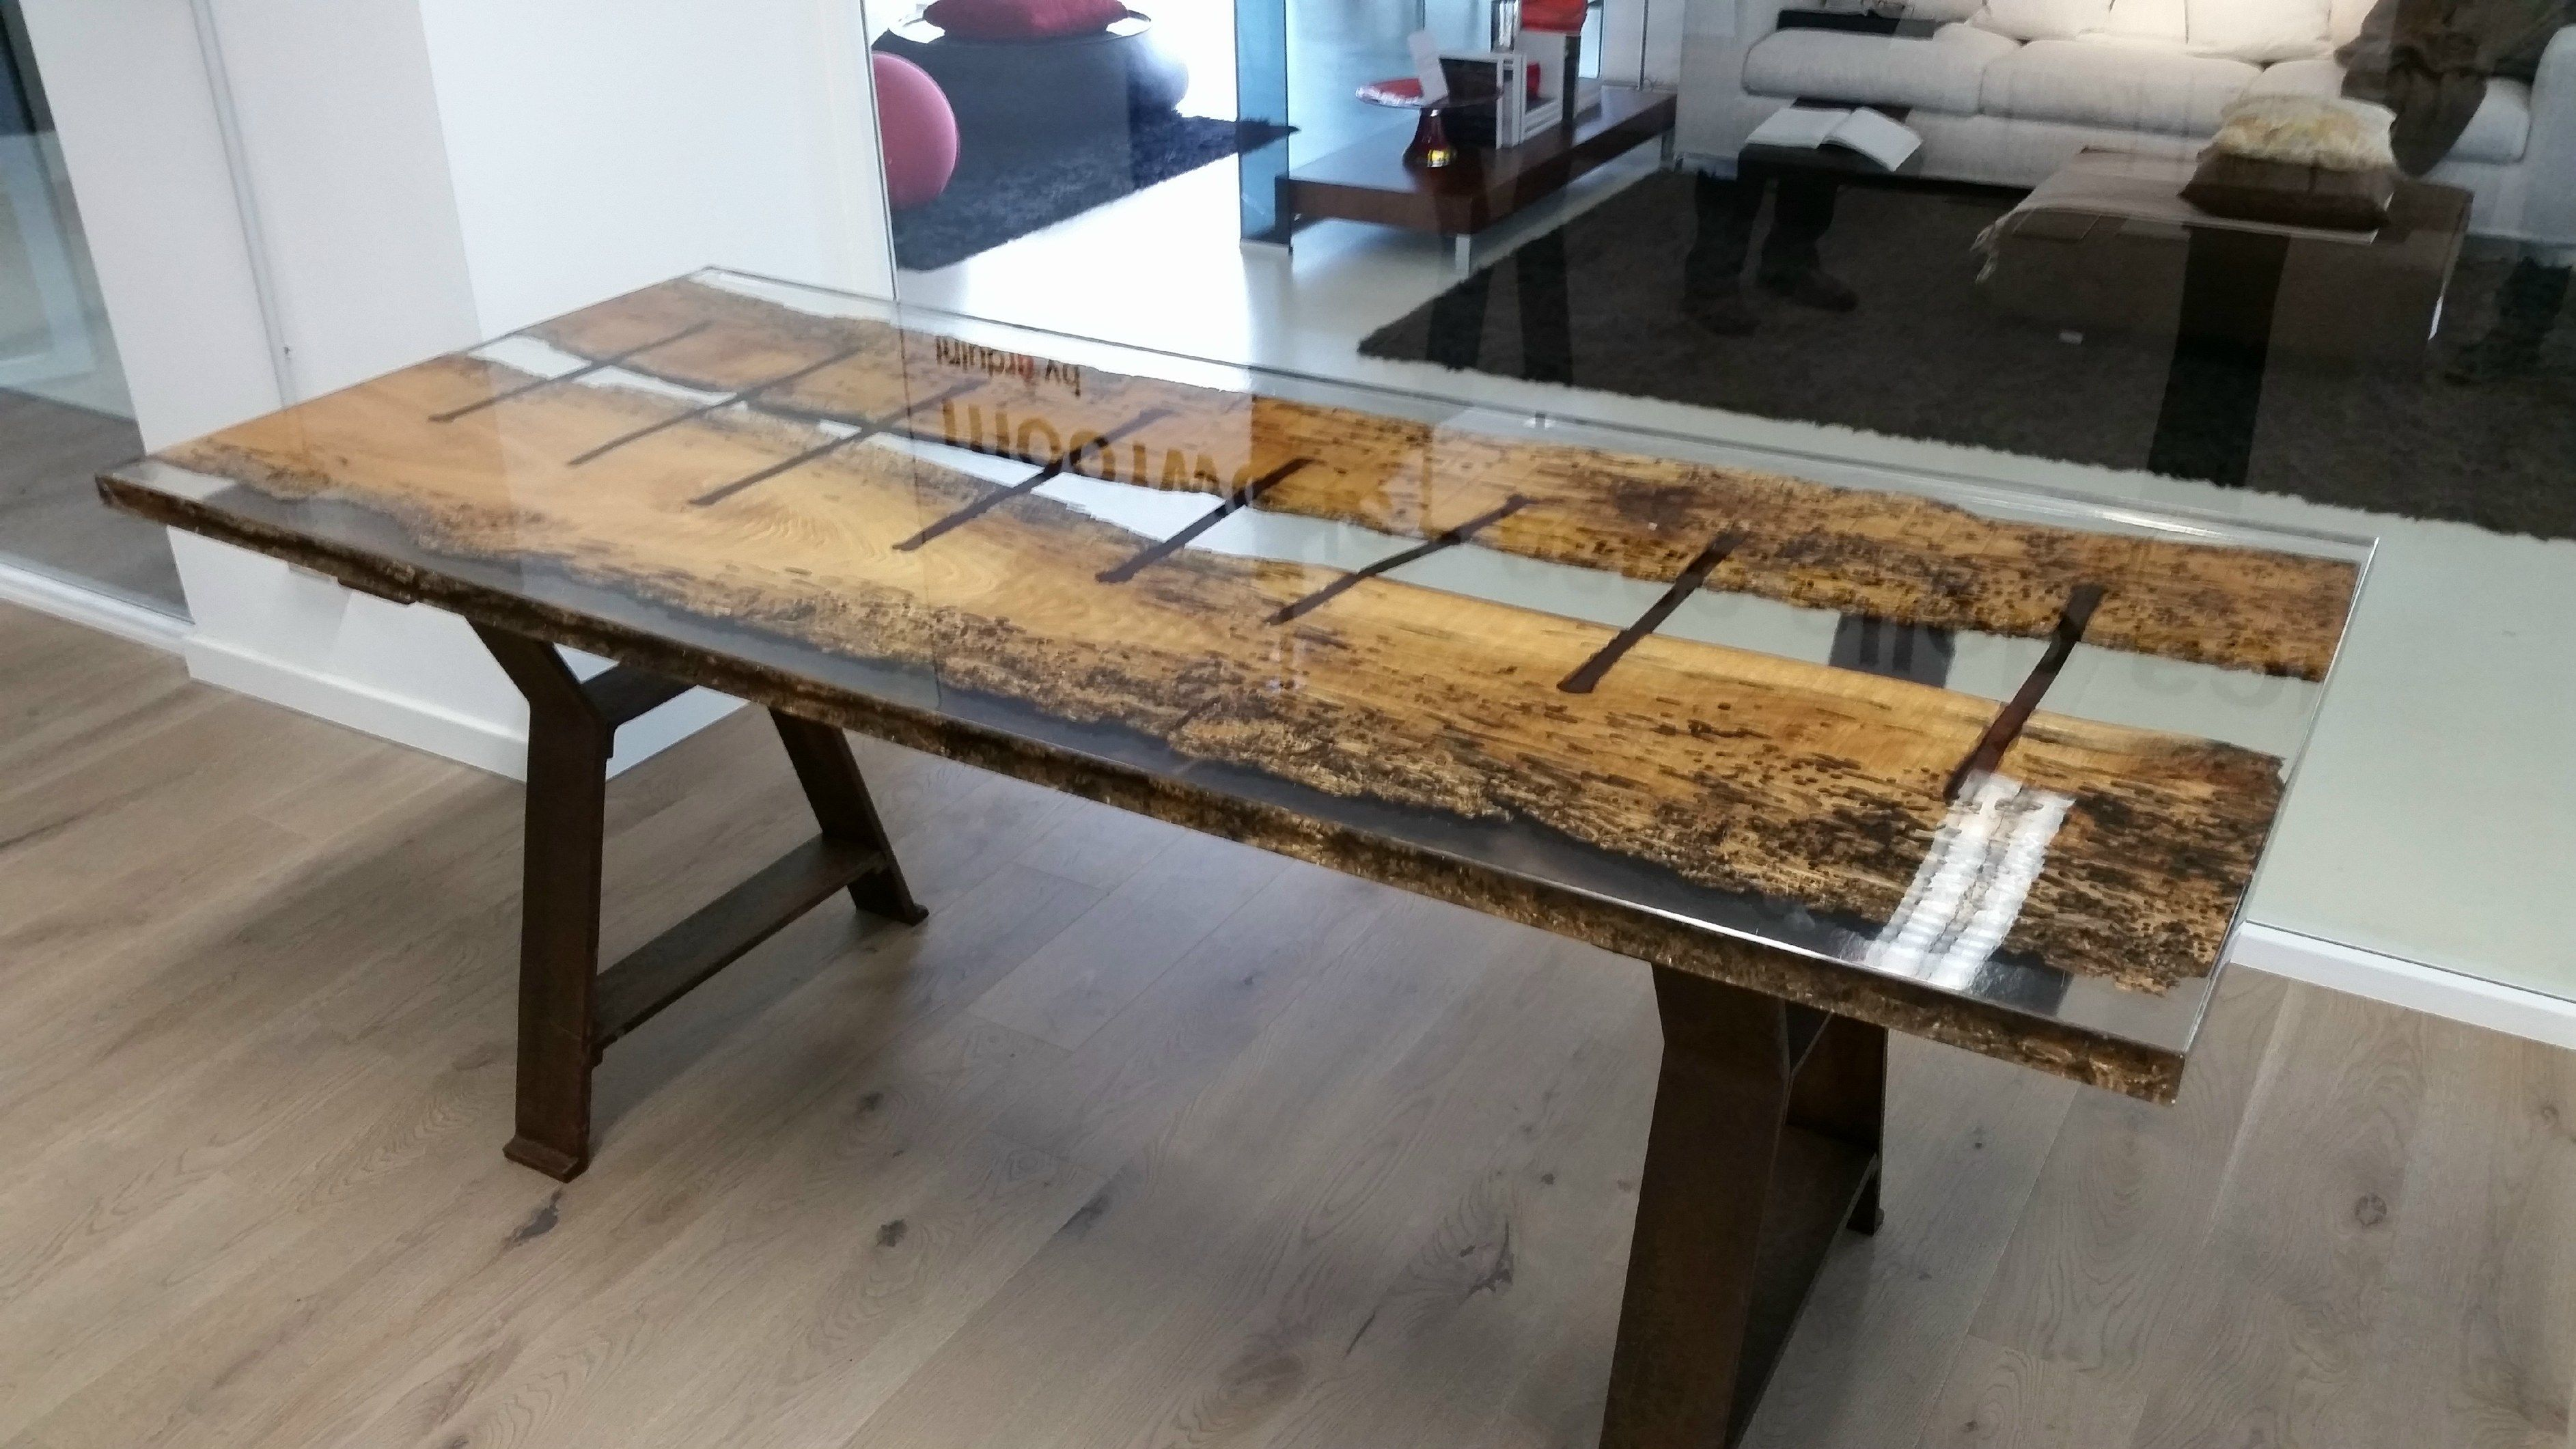 Wood and resin mesa de jantar by antico trentino di lucio for Resina epoxi madera